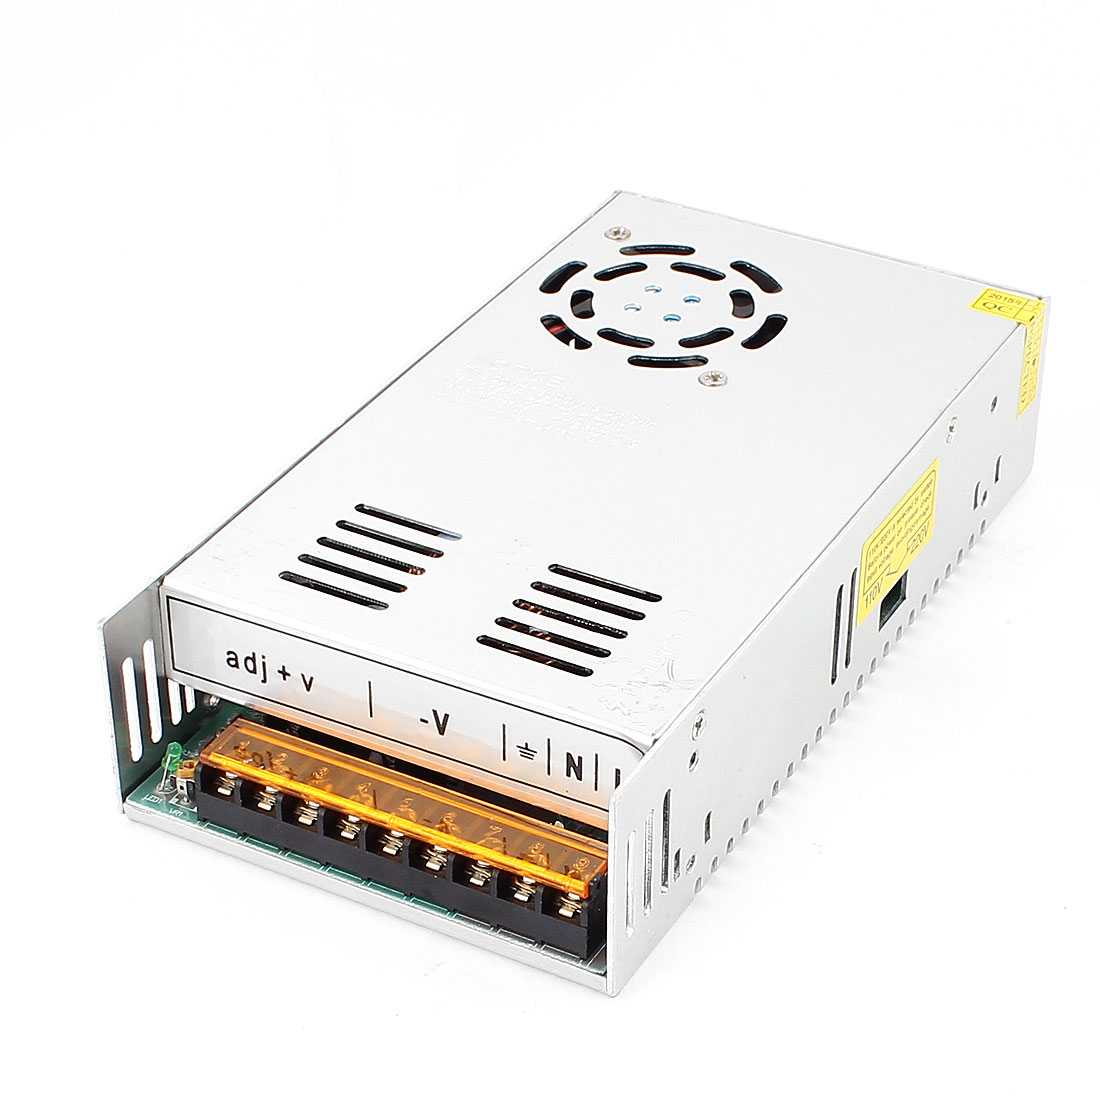 DMiotech DC 24V 20A 480W 9 Terminals Power Supply Switching Converter for LED Strip Light